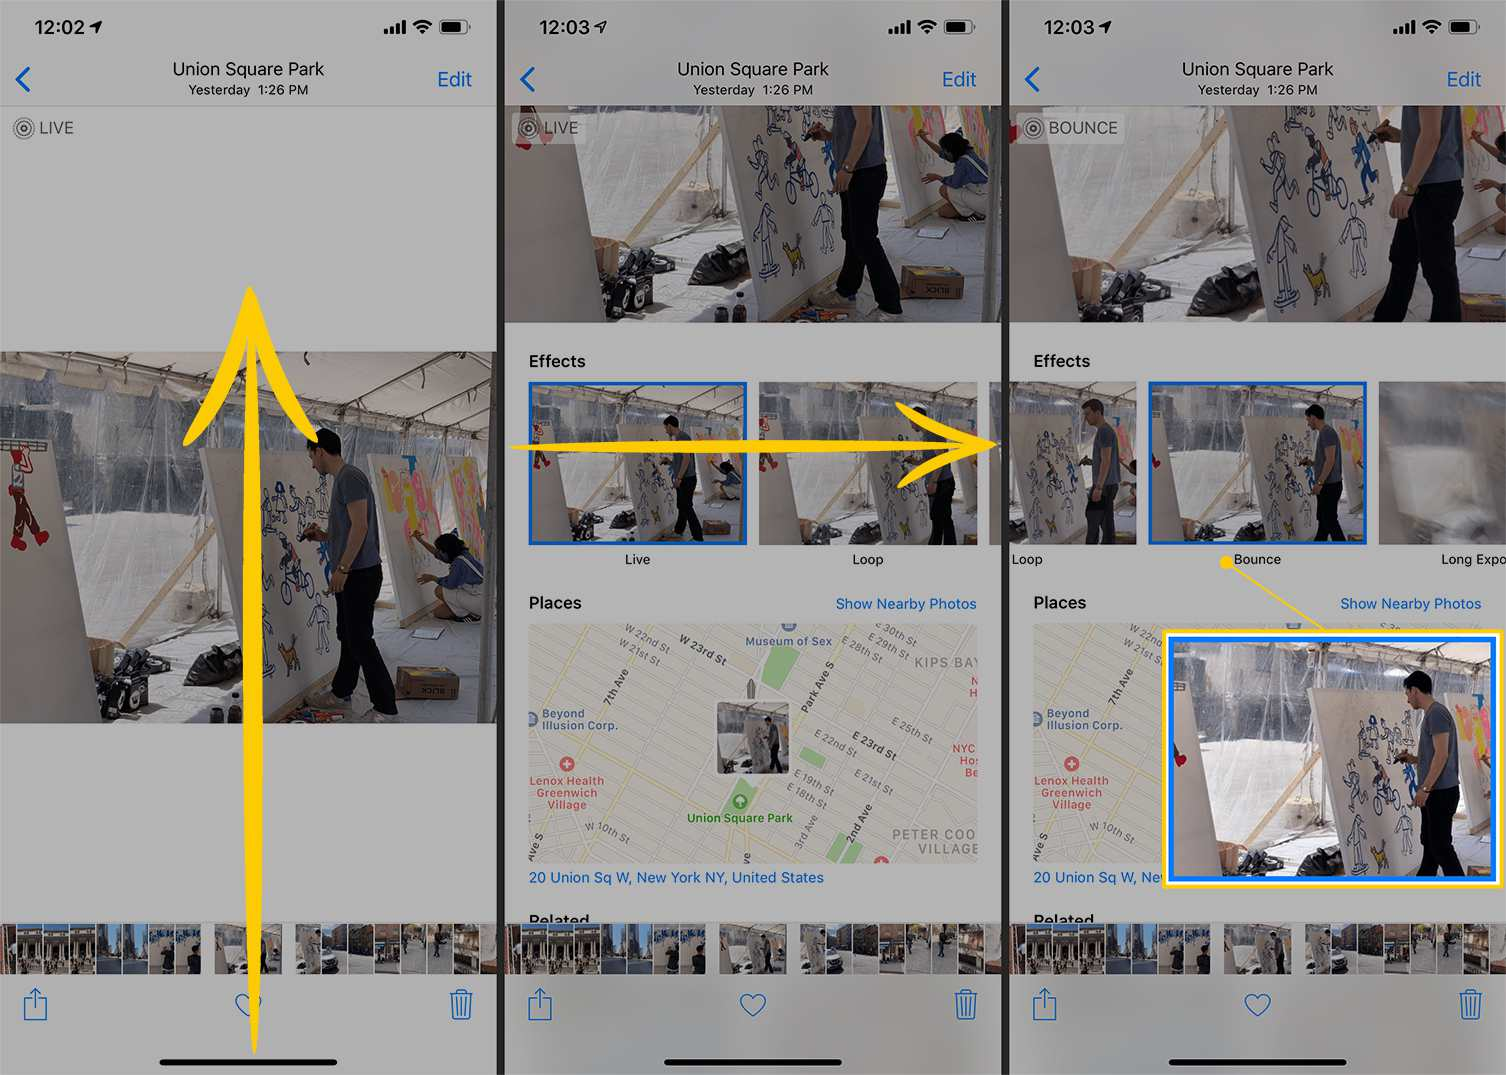 How to Use the Live Photo Editor on iPhone